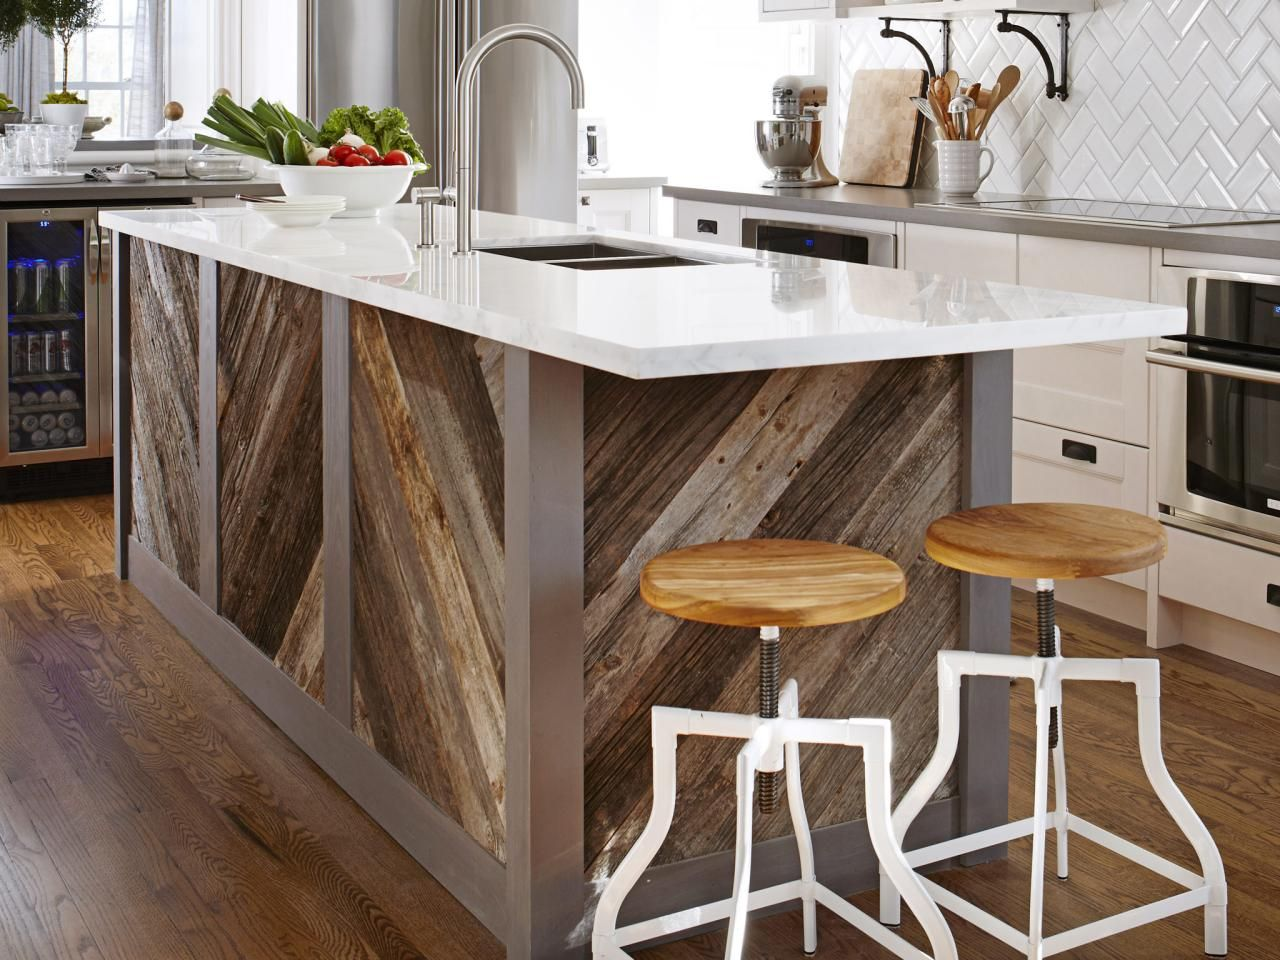 Unfinished Kitchen Islands Pictures Ideas From The Farmkitchen